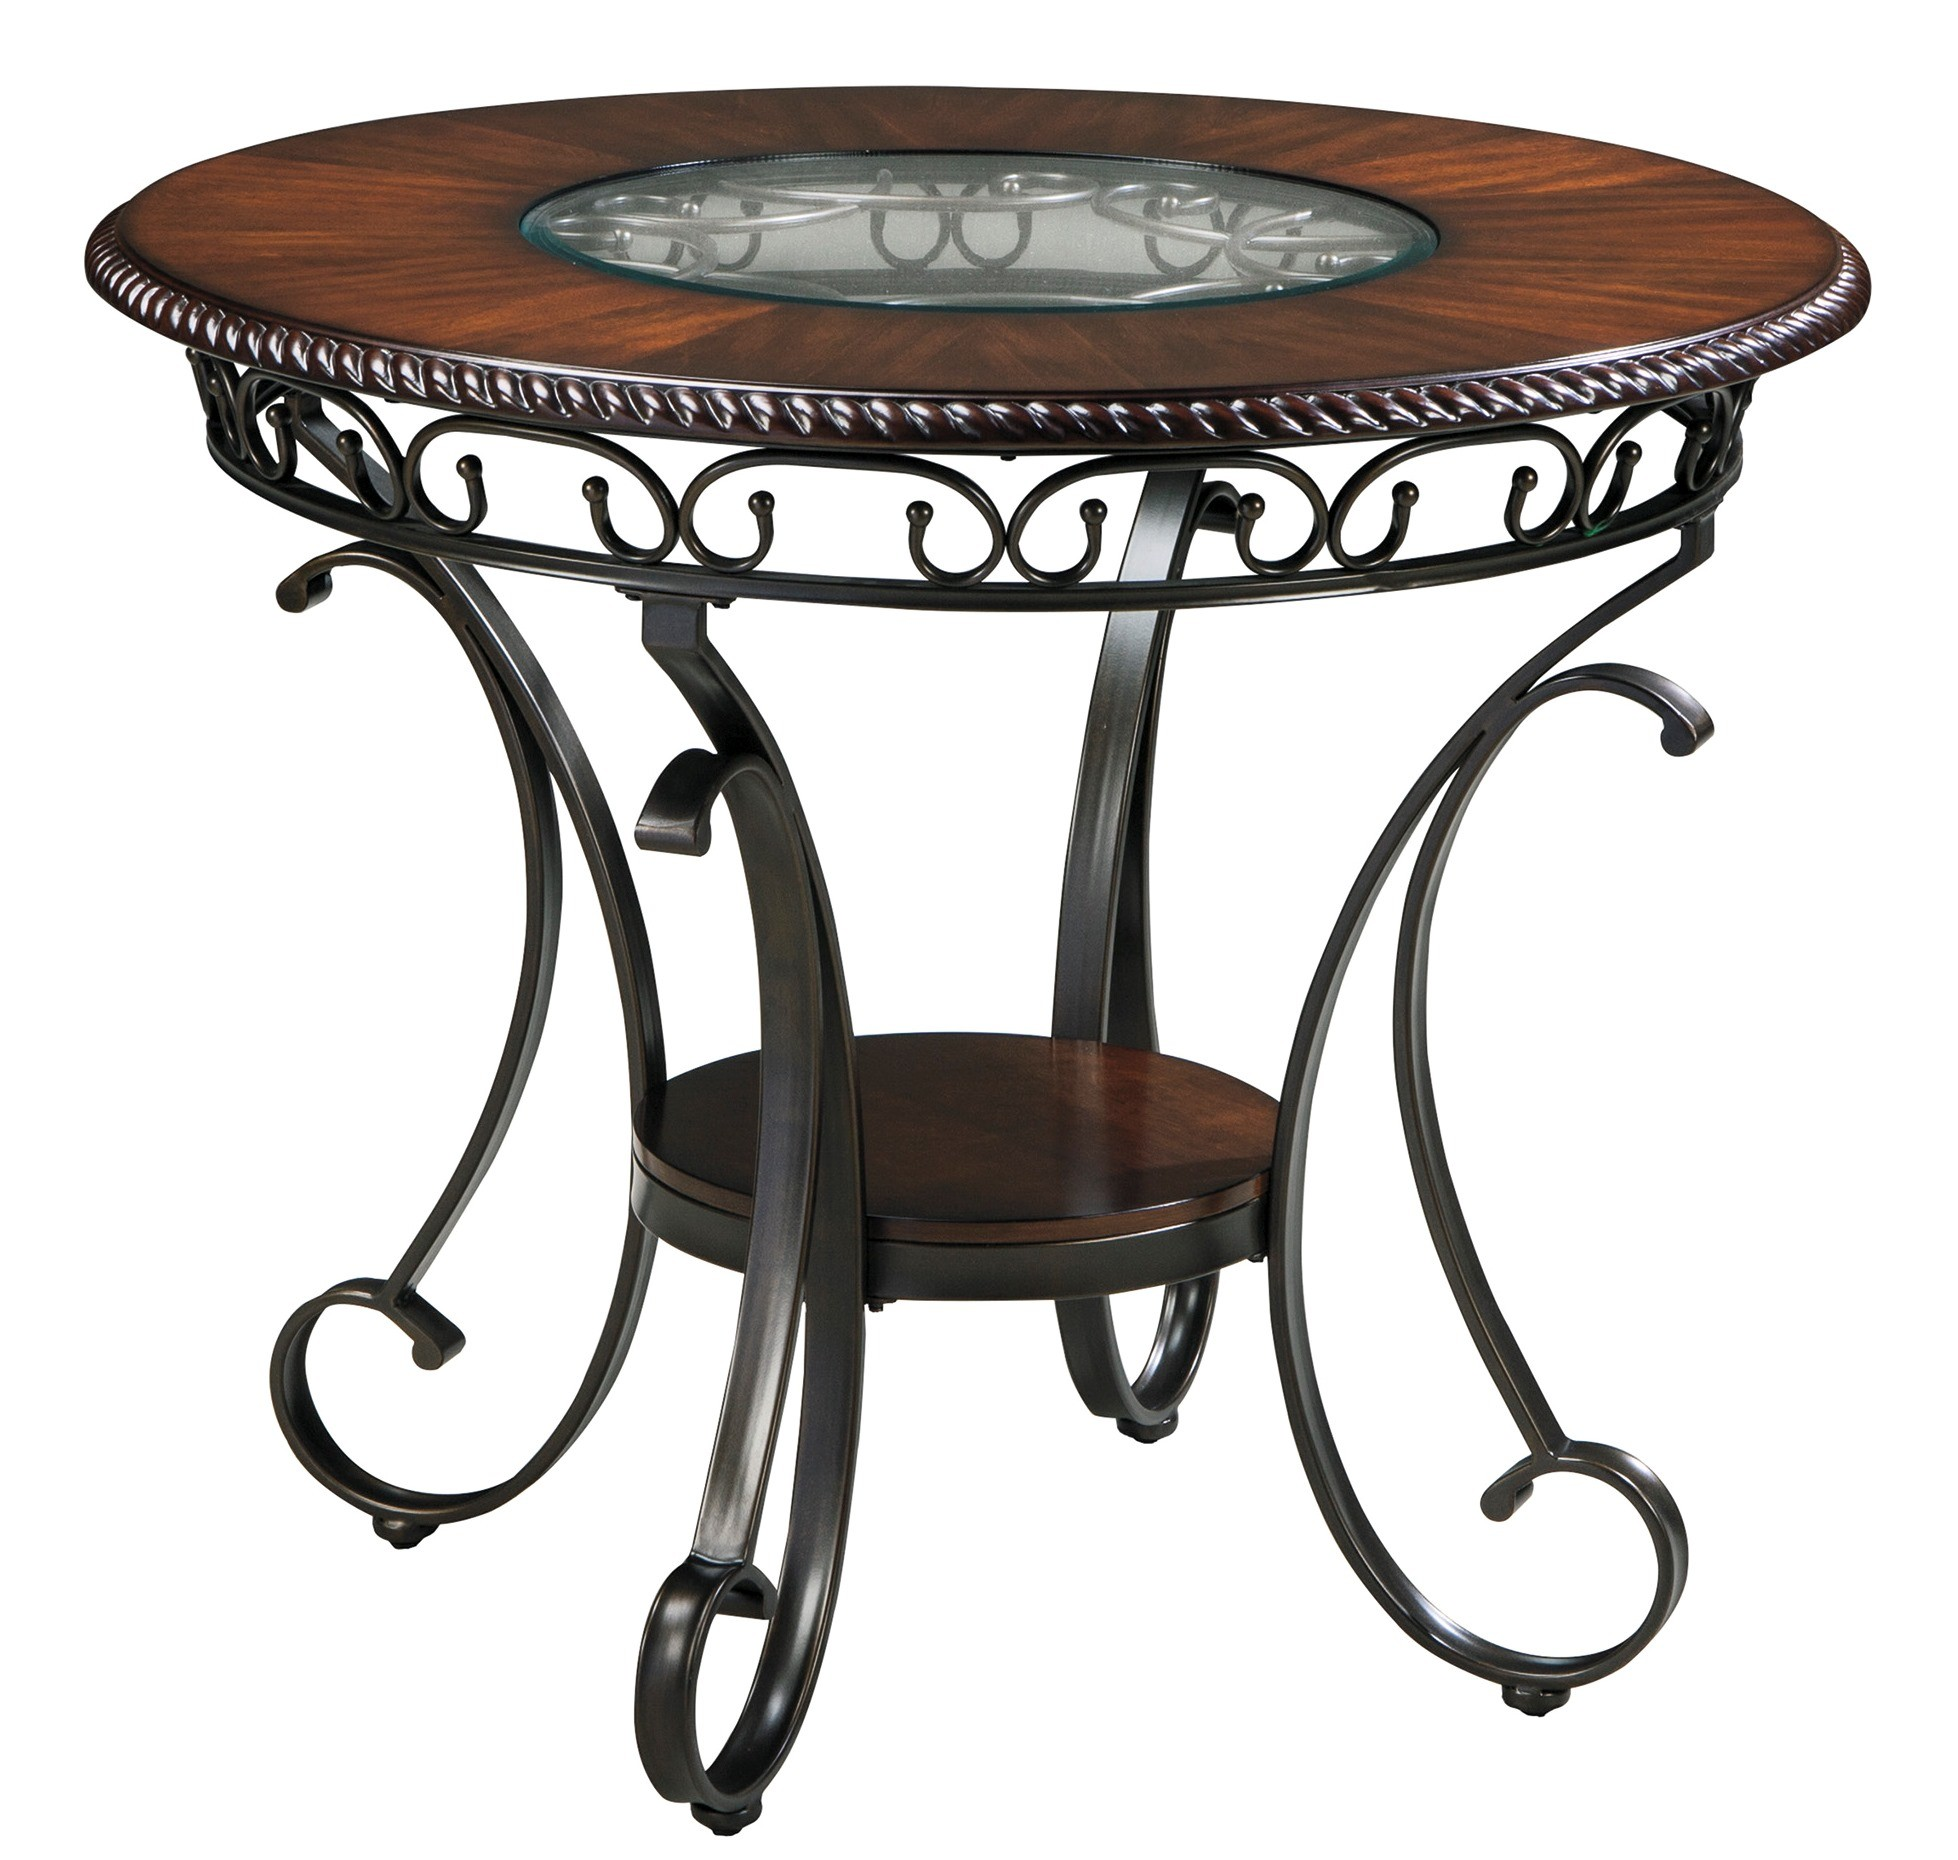 Glambrey Round Dining Room Counter Table From Ashley D329 13 Coleman Furniture